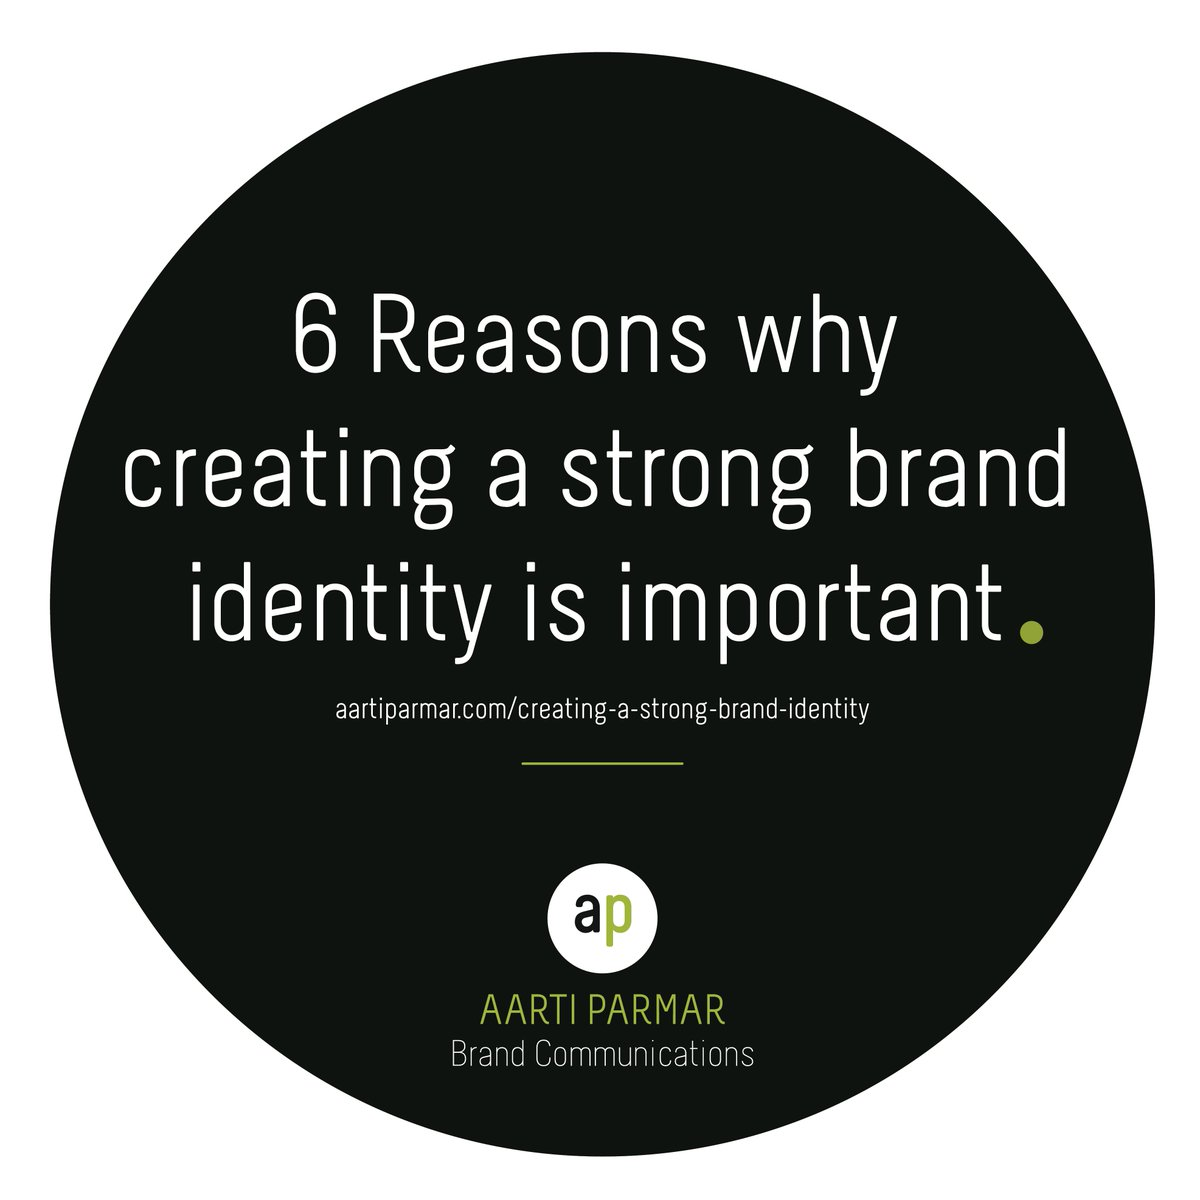 ap brand comms aartiparmar ap twitter hertshour here are 6 reasons why establishing your brand identity is essential aartiparmar com creating a strong brand identity